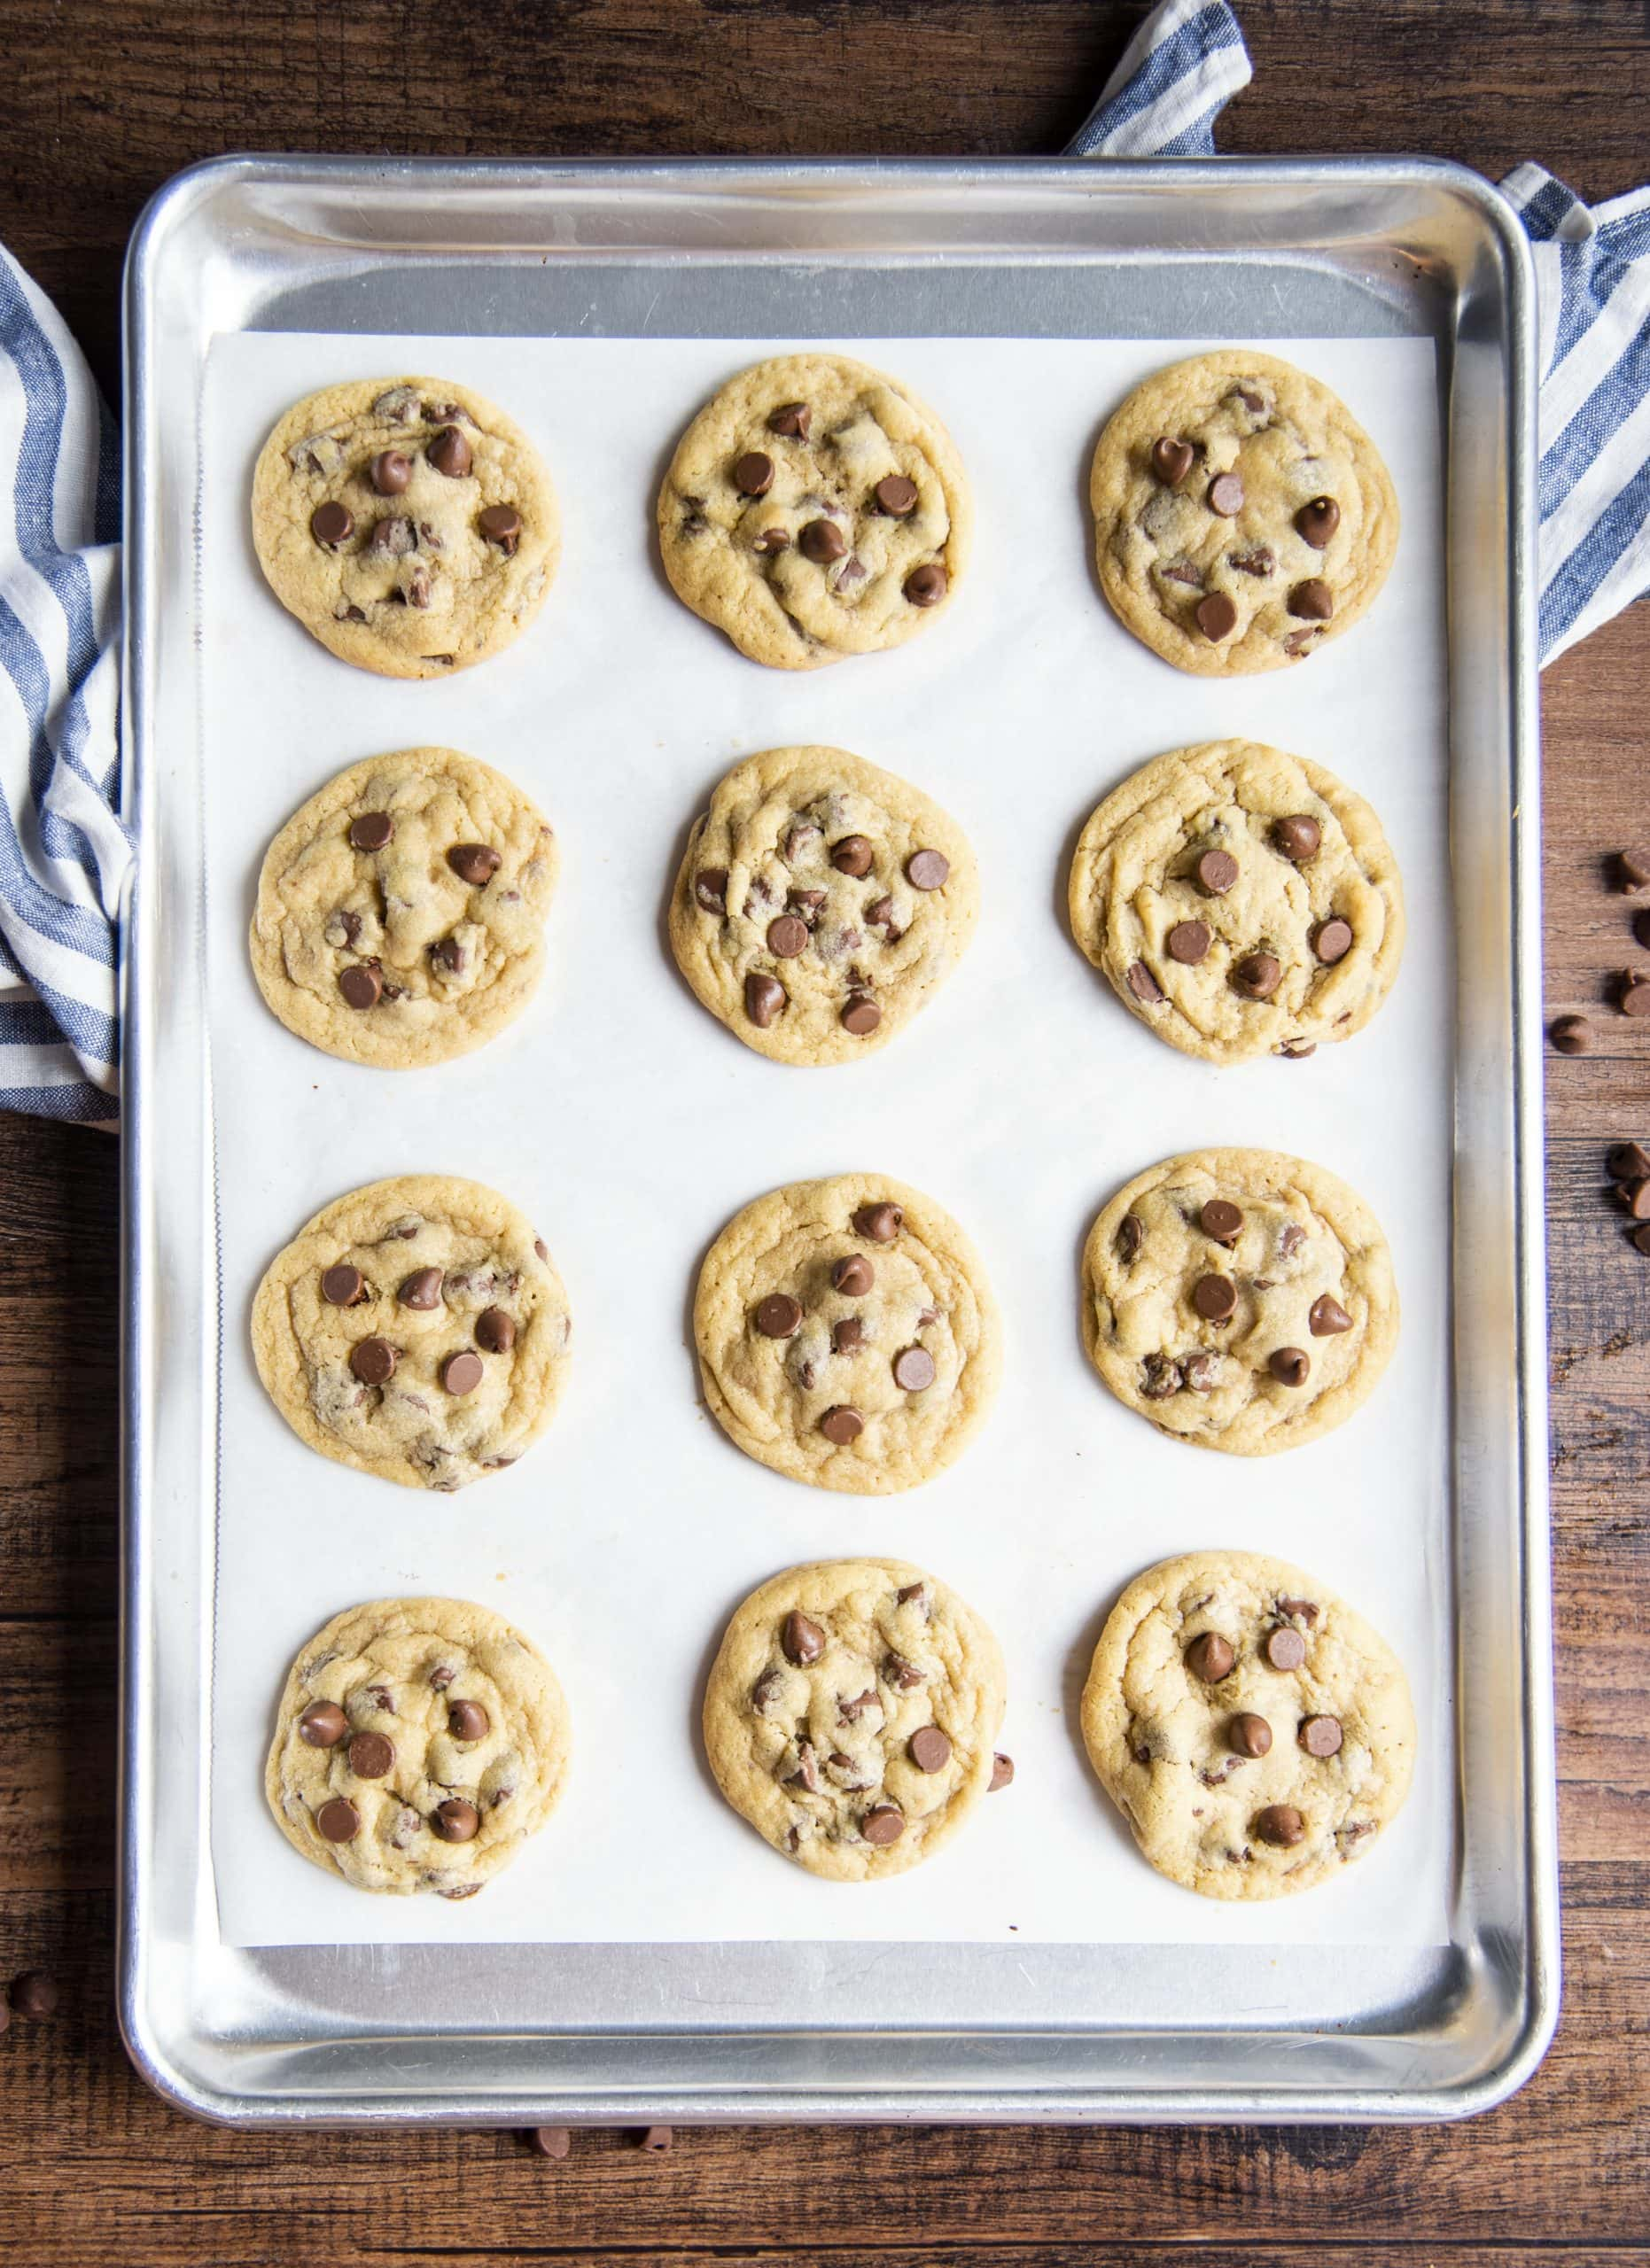 A pan of chocolate chip pudding cookies on parchment paper.